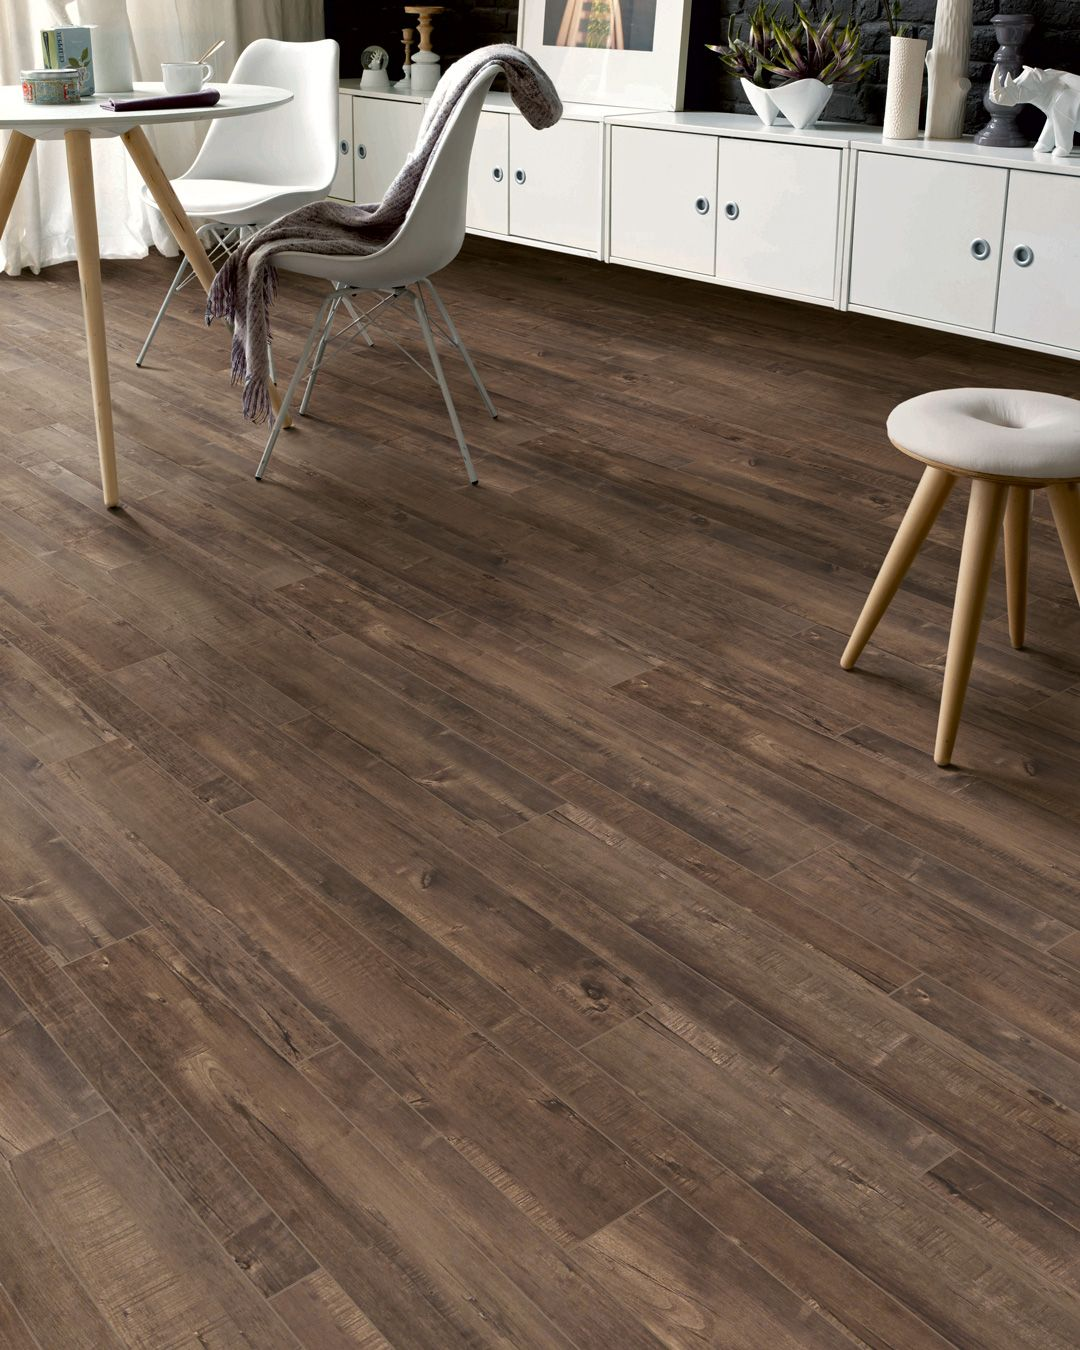 Tarkett Fresh Air 35030106820 Brindle Tarkett Laminate